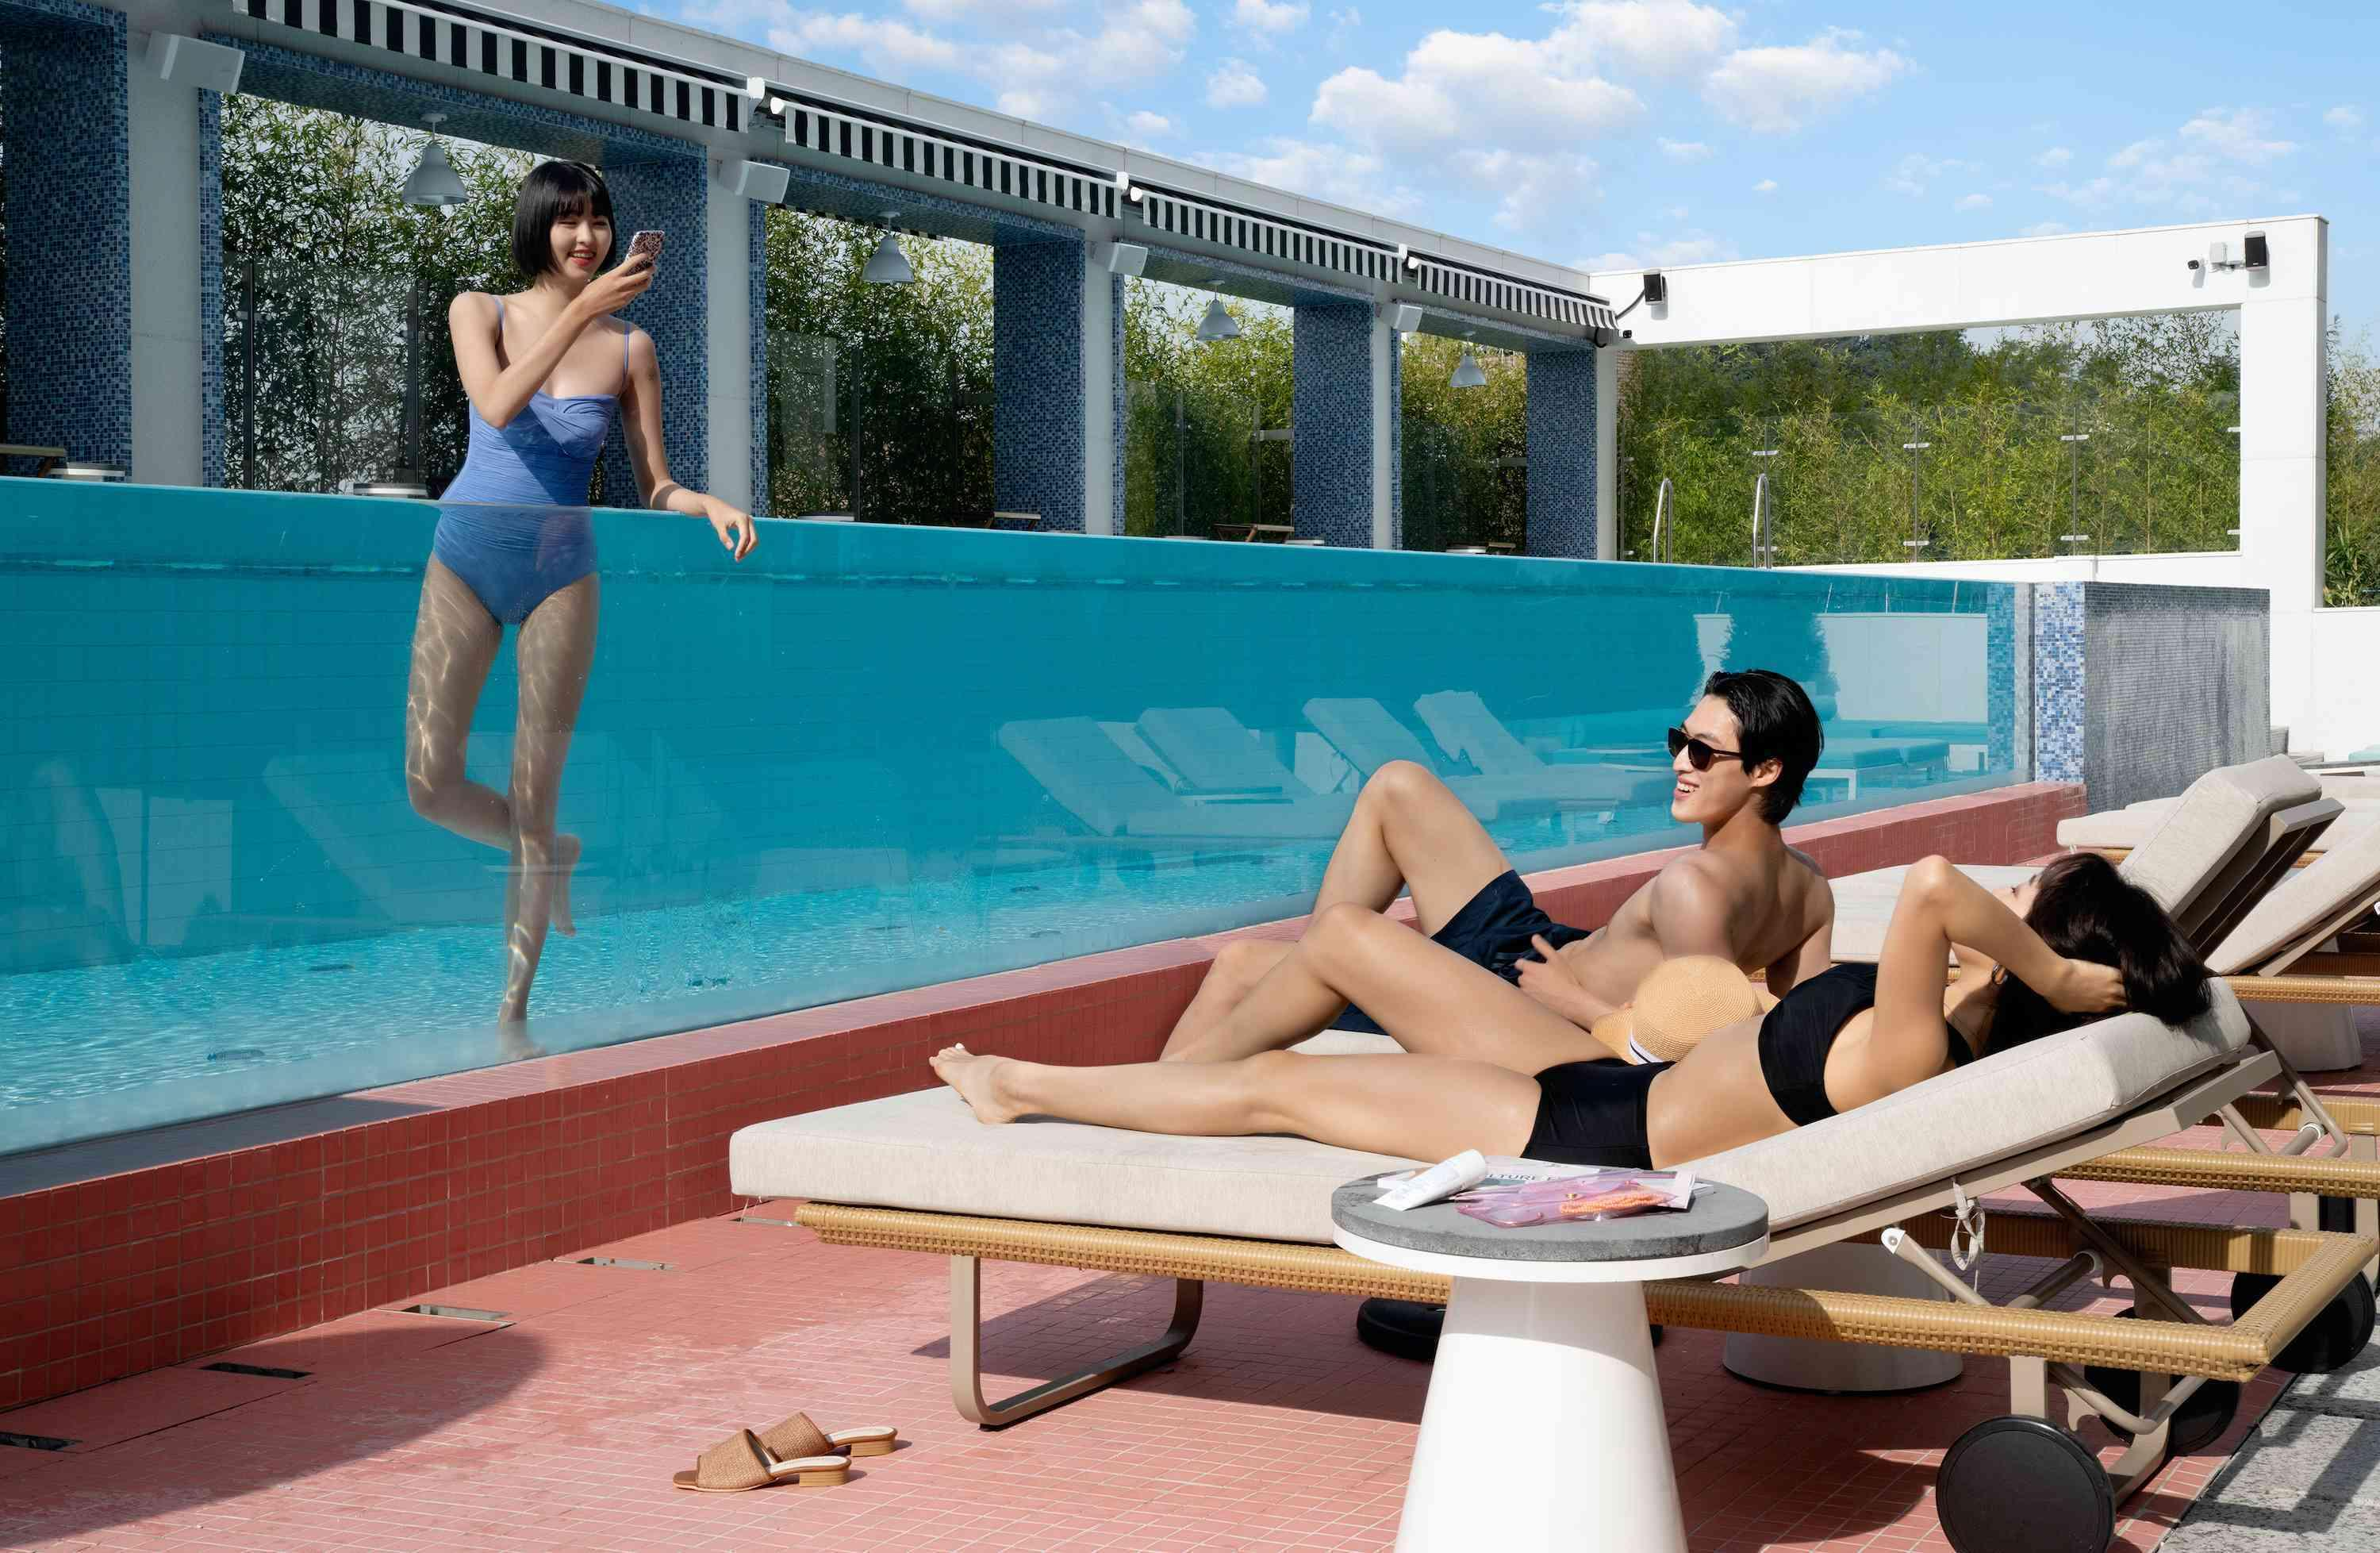 Woman in a pool, couple on loungers